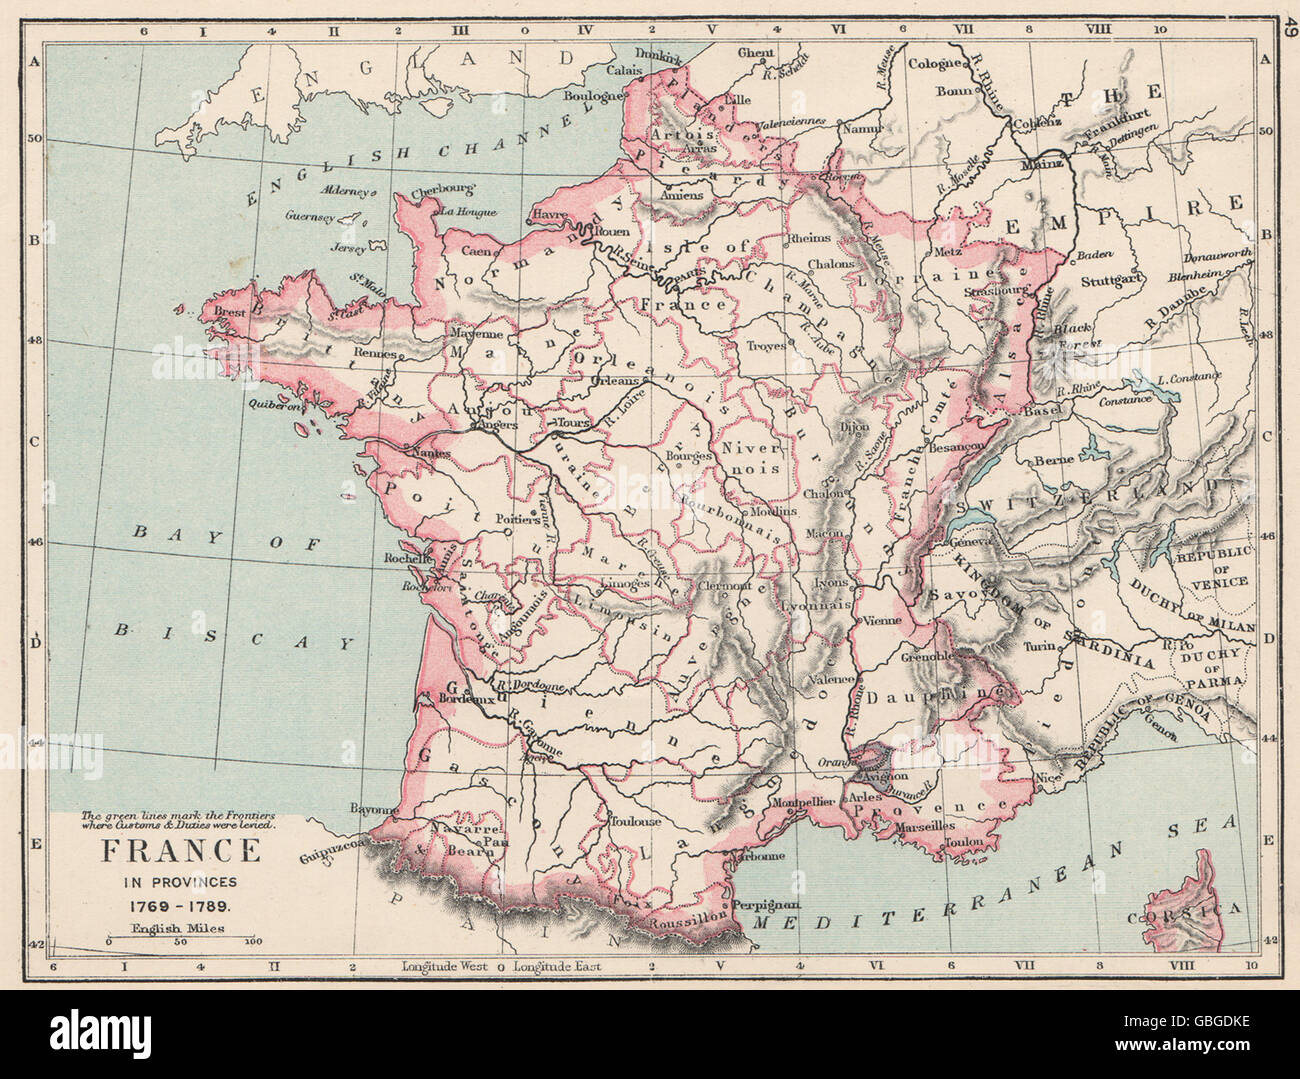 FRANCE: France in provinces 1769-1789, 1907 antique map - Stock Image